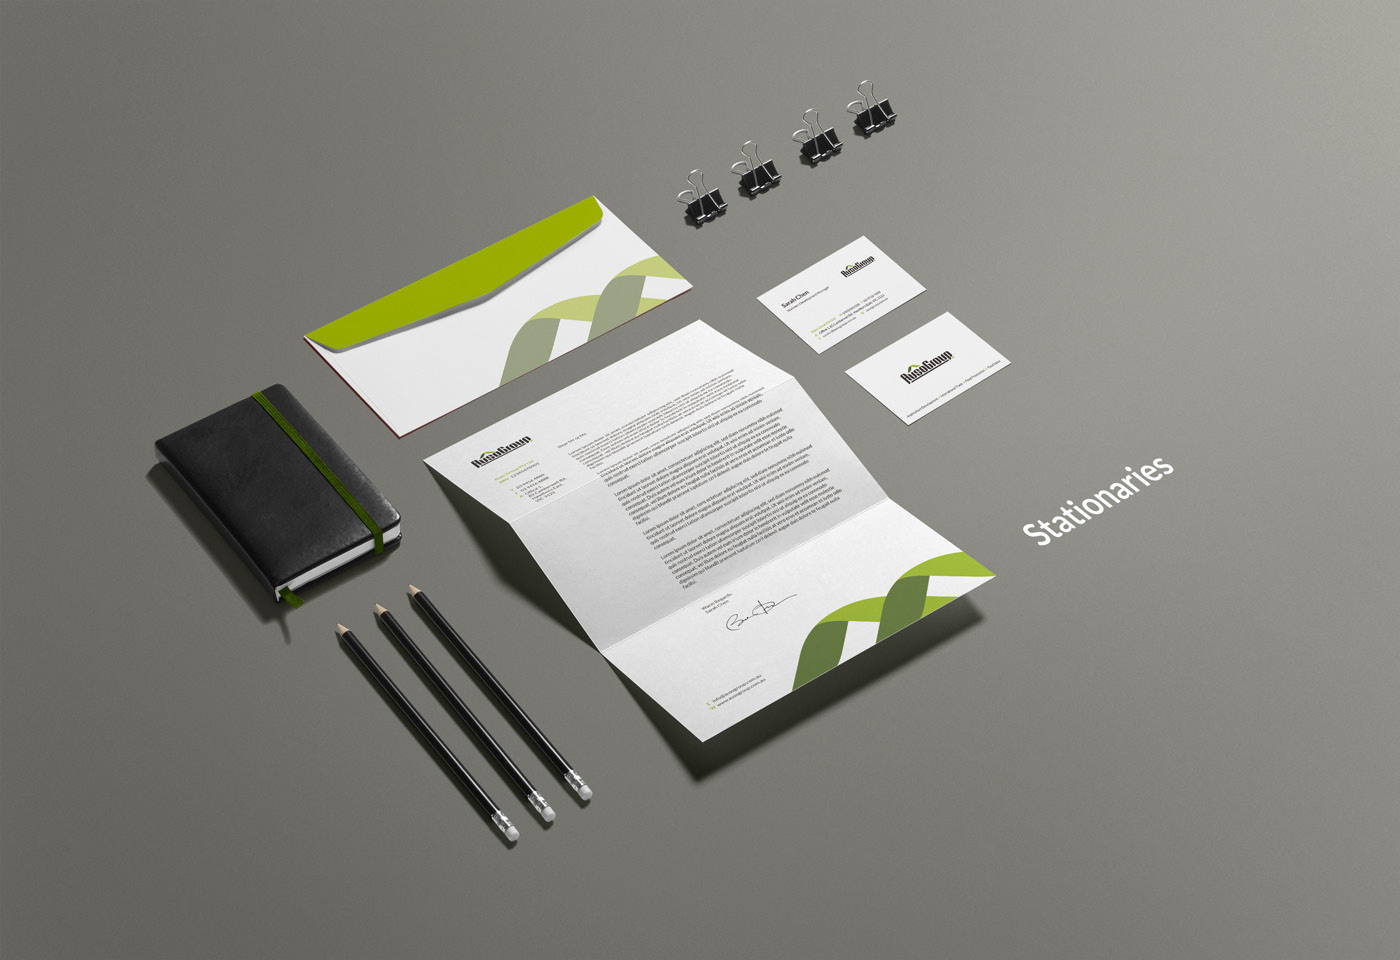 agriculture trading company branding by Z Creative Studio Branding & Graphic Design Melbourne